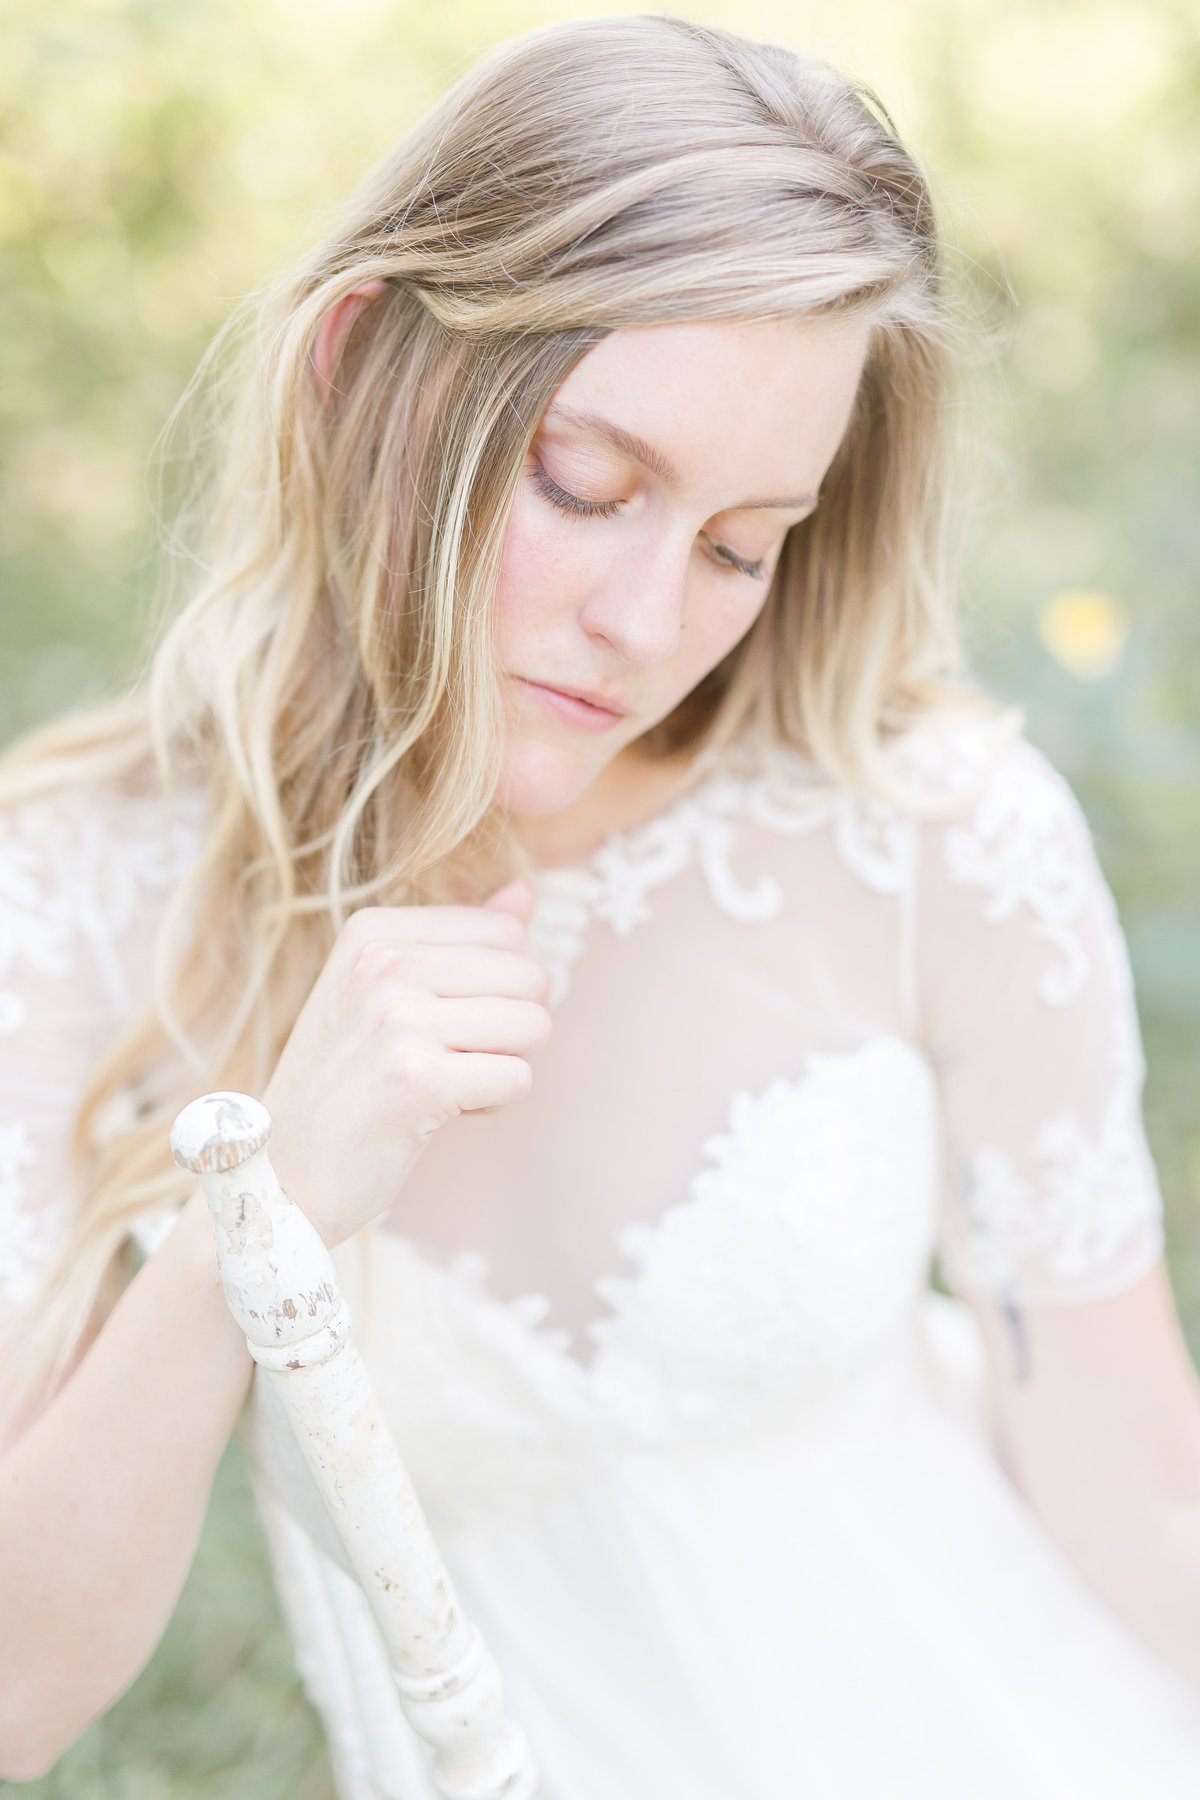 Kailey - Styled Shoot - New Edits-118